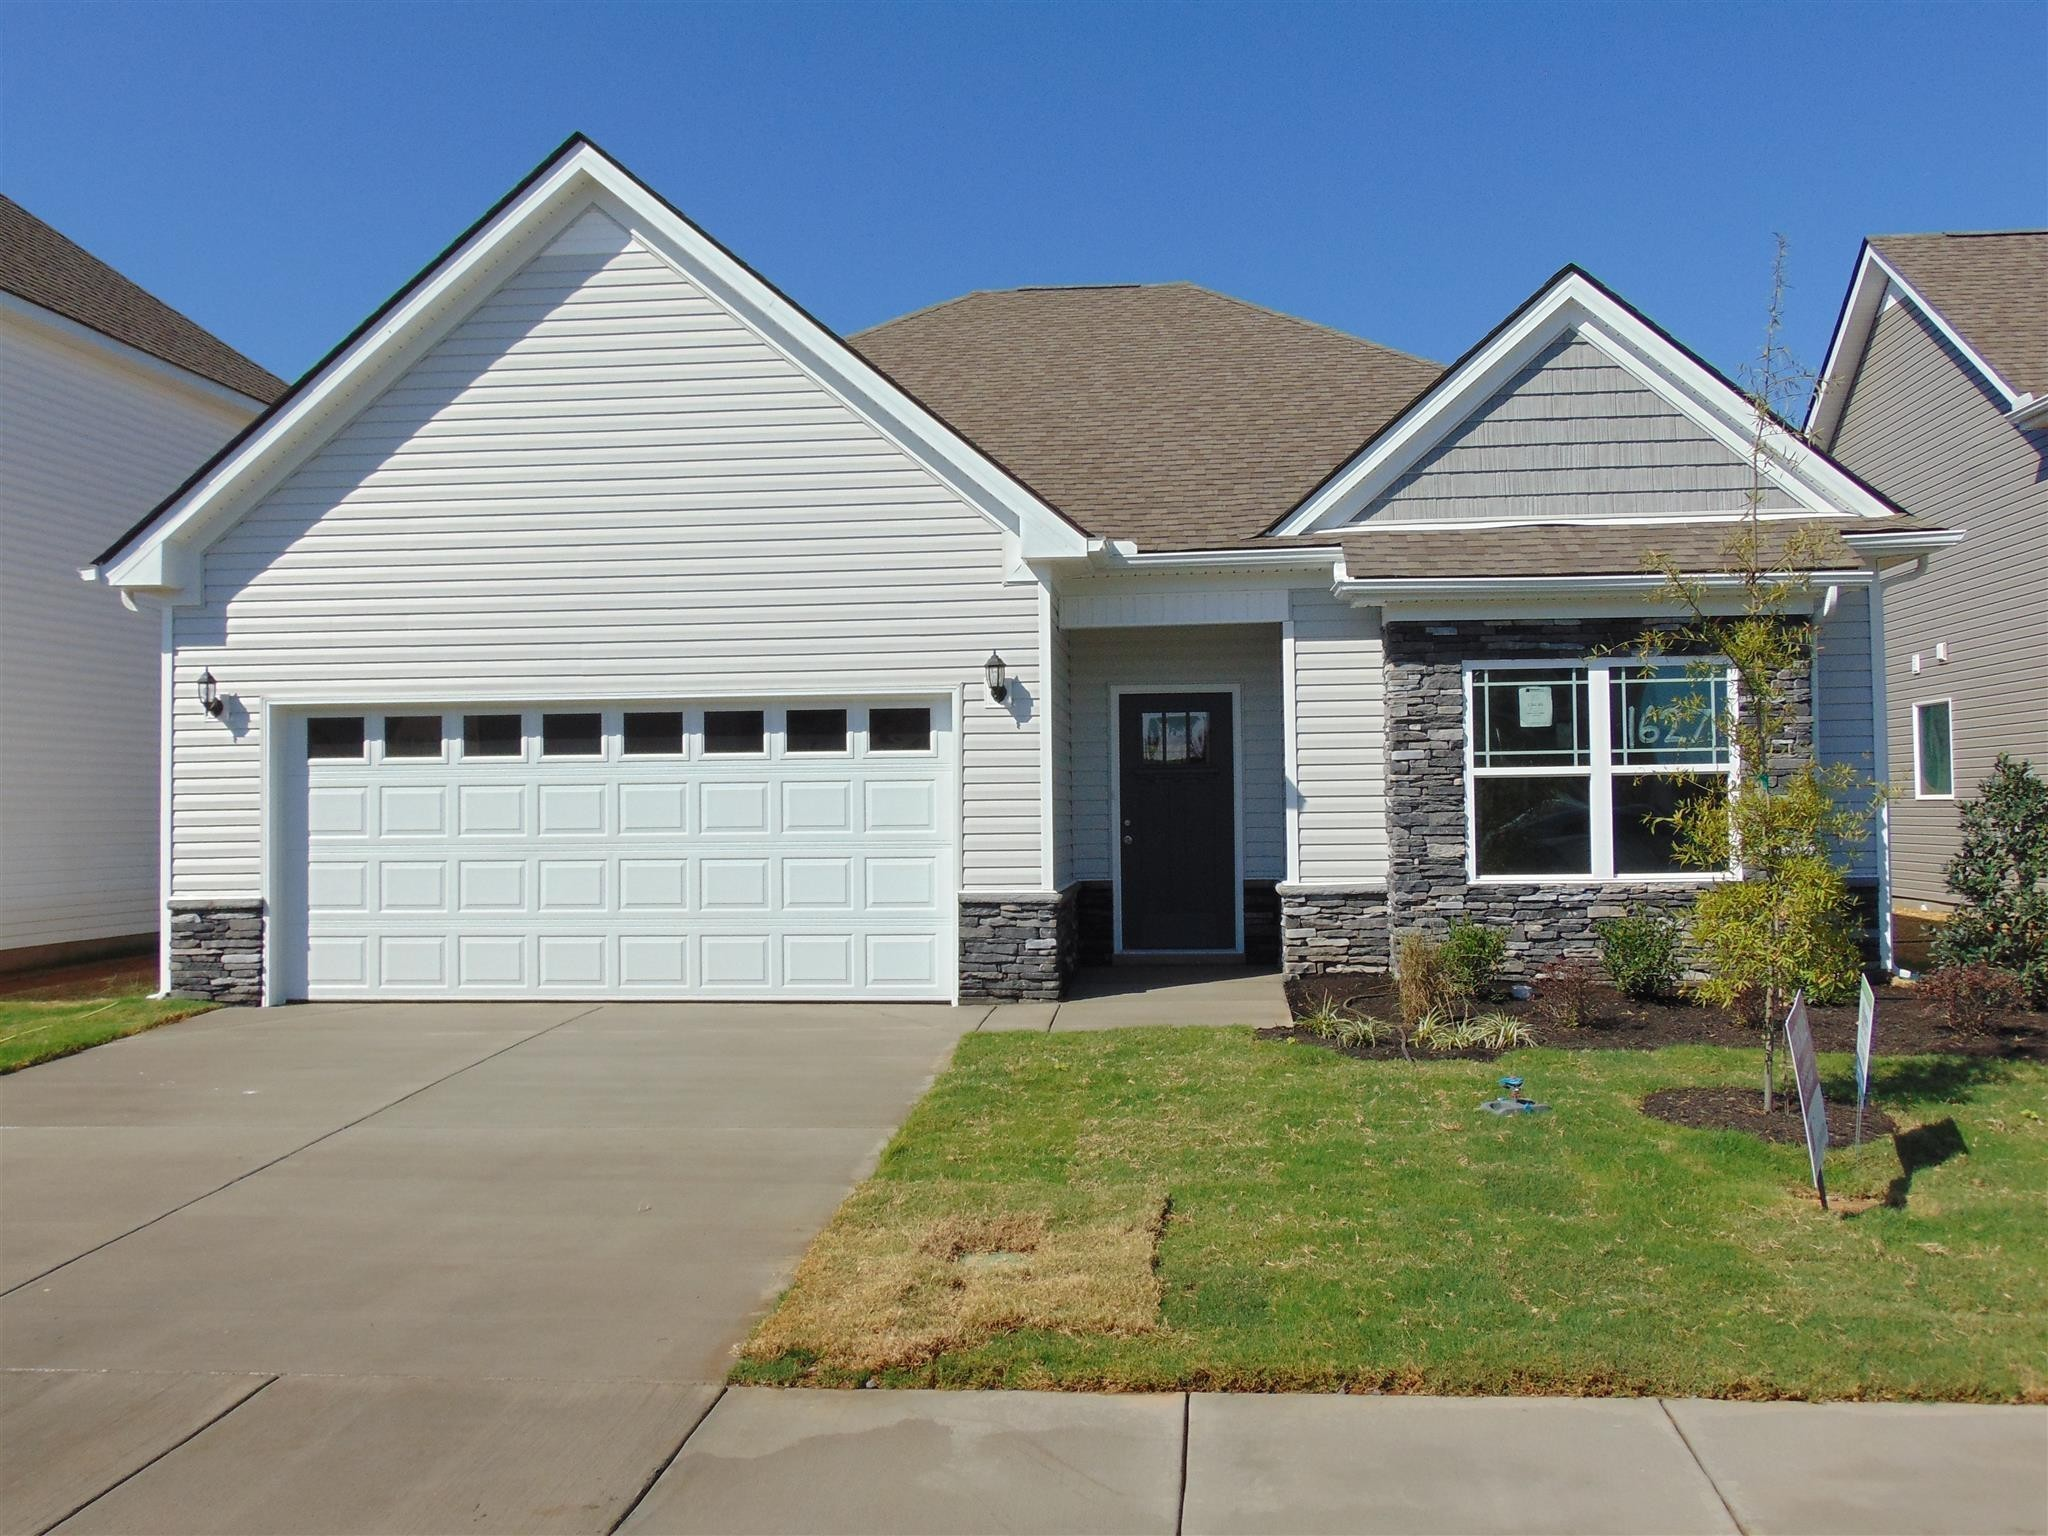 WOW NEW -Ranch with Glamour Bath, Double Vanity, Open Floor Plan, Laminate in Foyer, Kitchen, and Breakfast. Granite in Kitchen. Stainless Steel Appliances in Kitchen. Trey Ceiling in Owners Suite. 2 car garage.